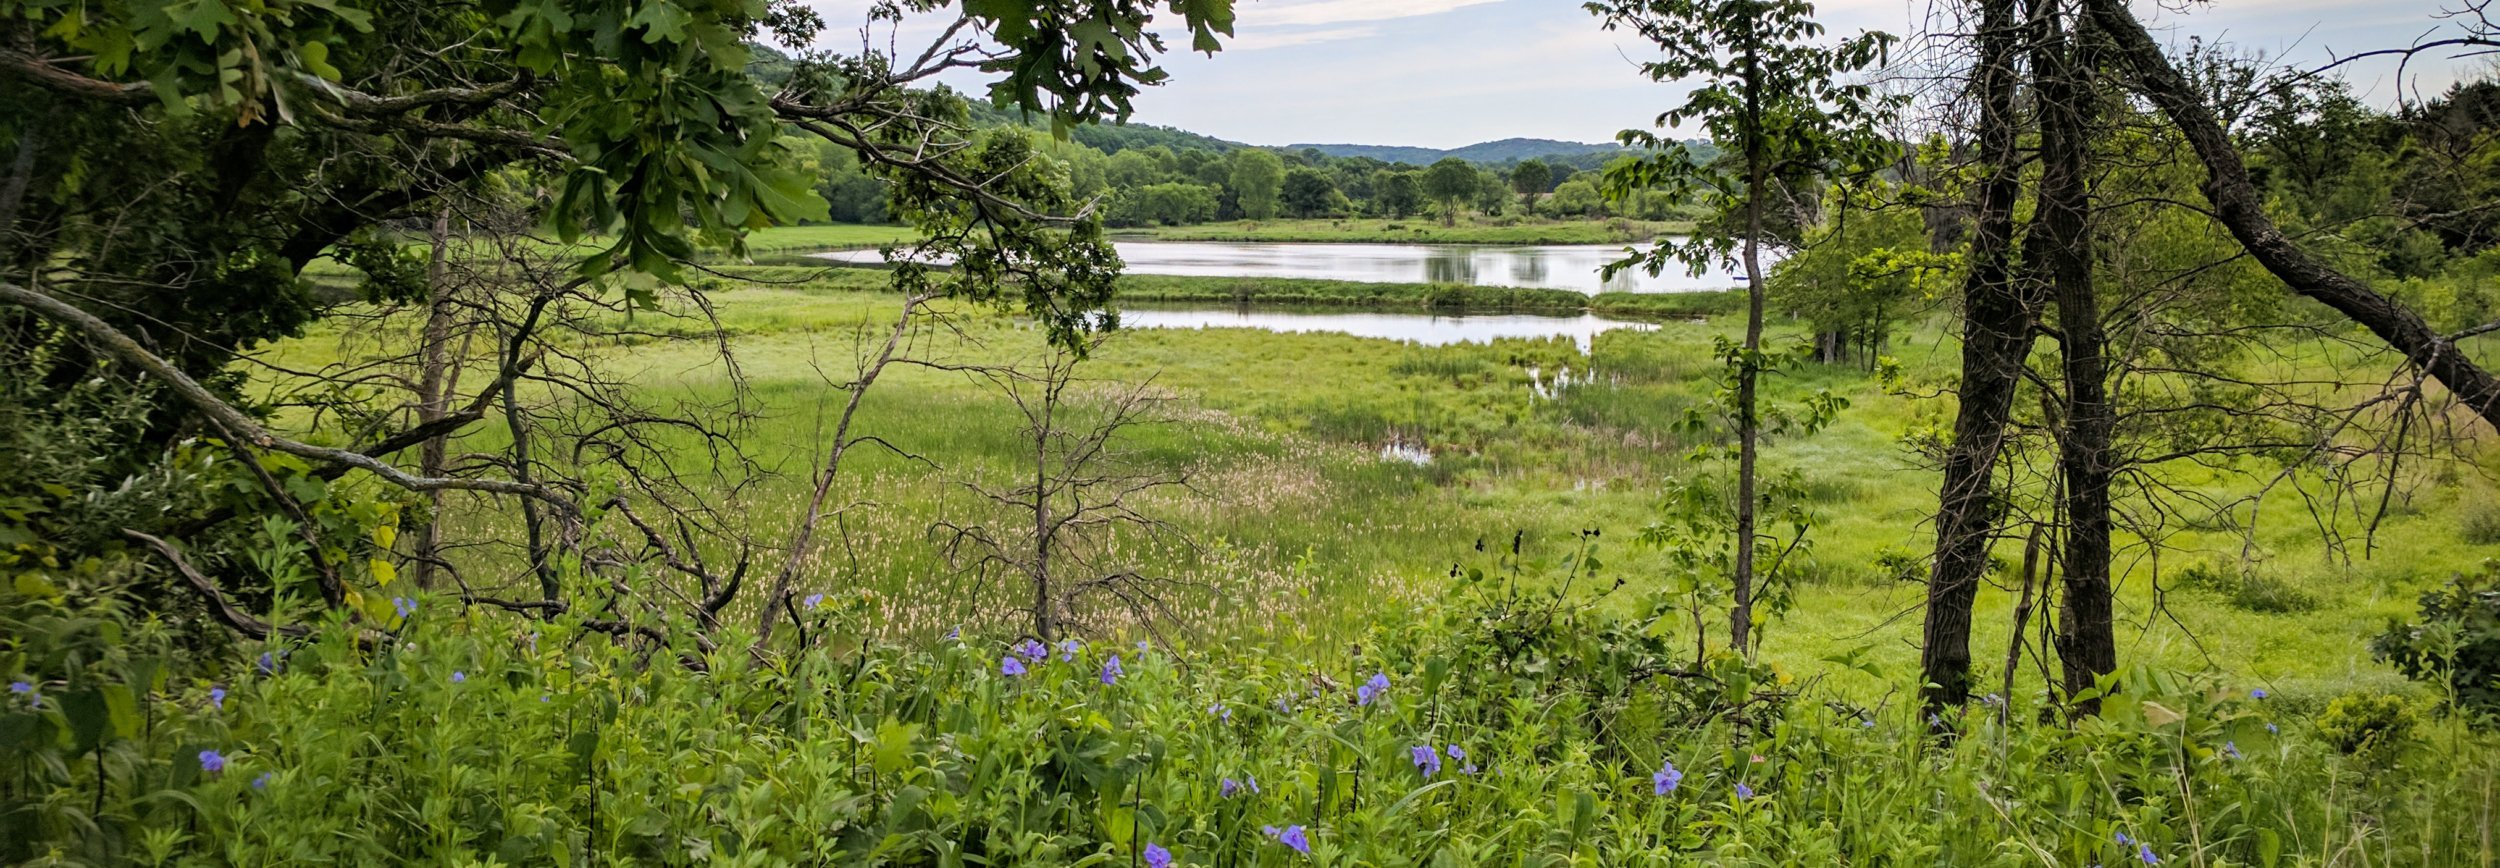 Ice Age Trail Alliance, Ice Age National Scenic Trail, Save the LWCF, Land conservation and advocacy